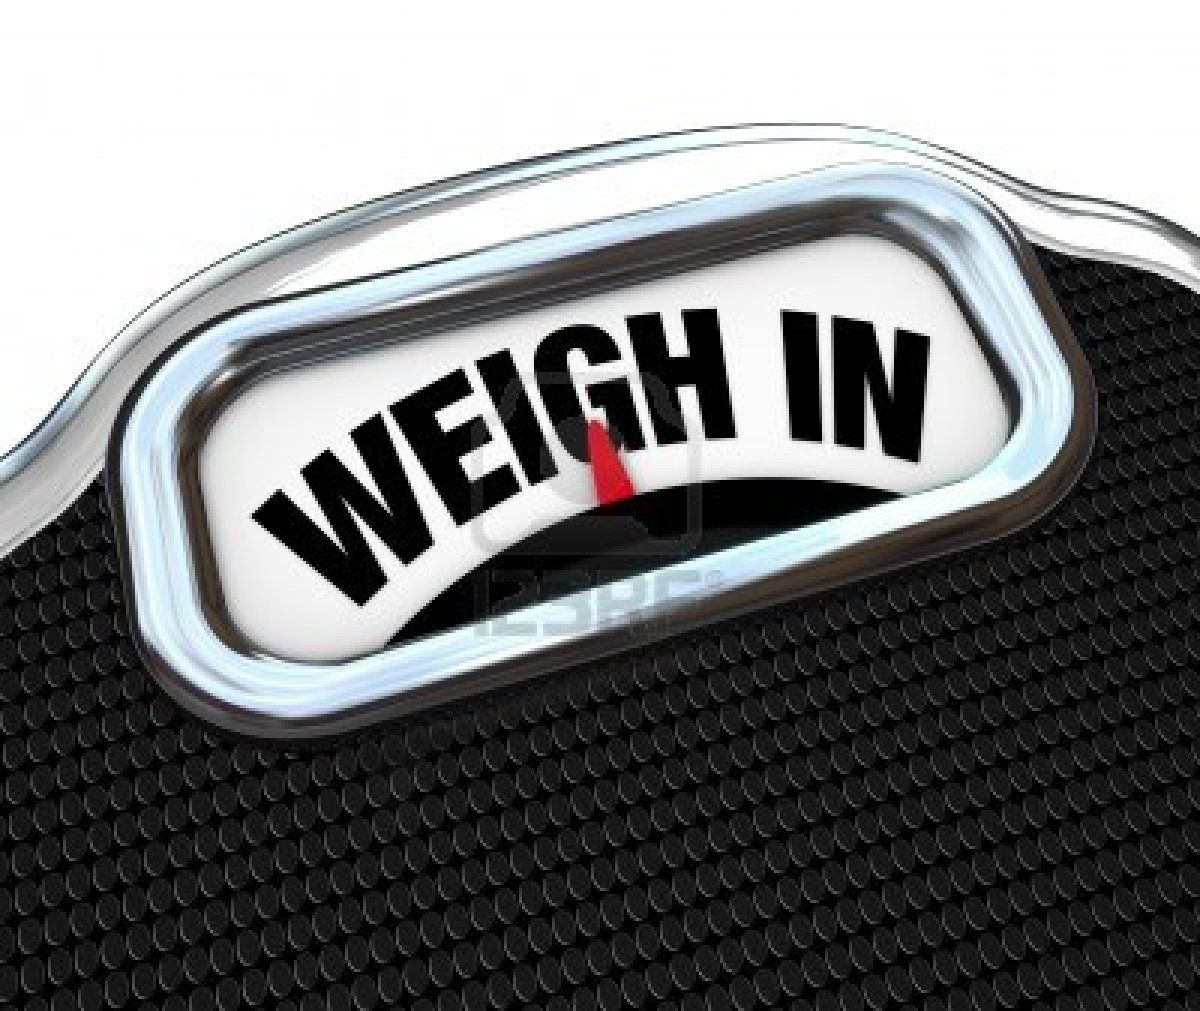 Pin on Weight.